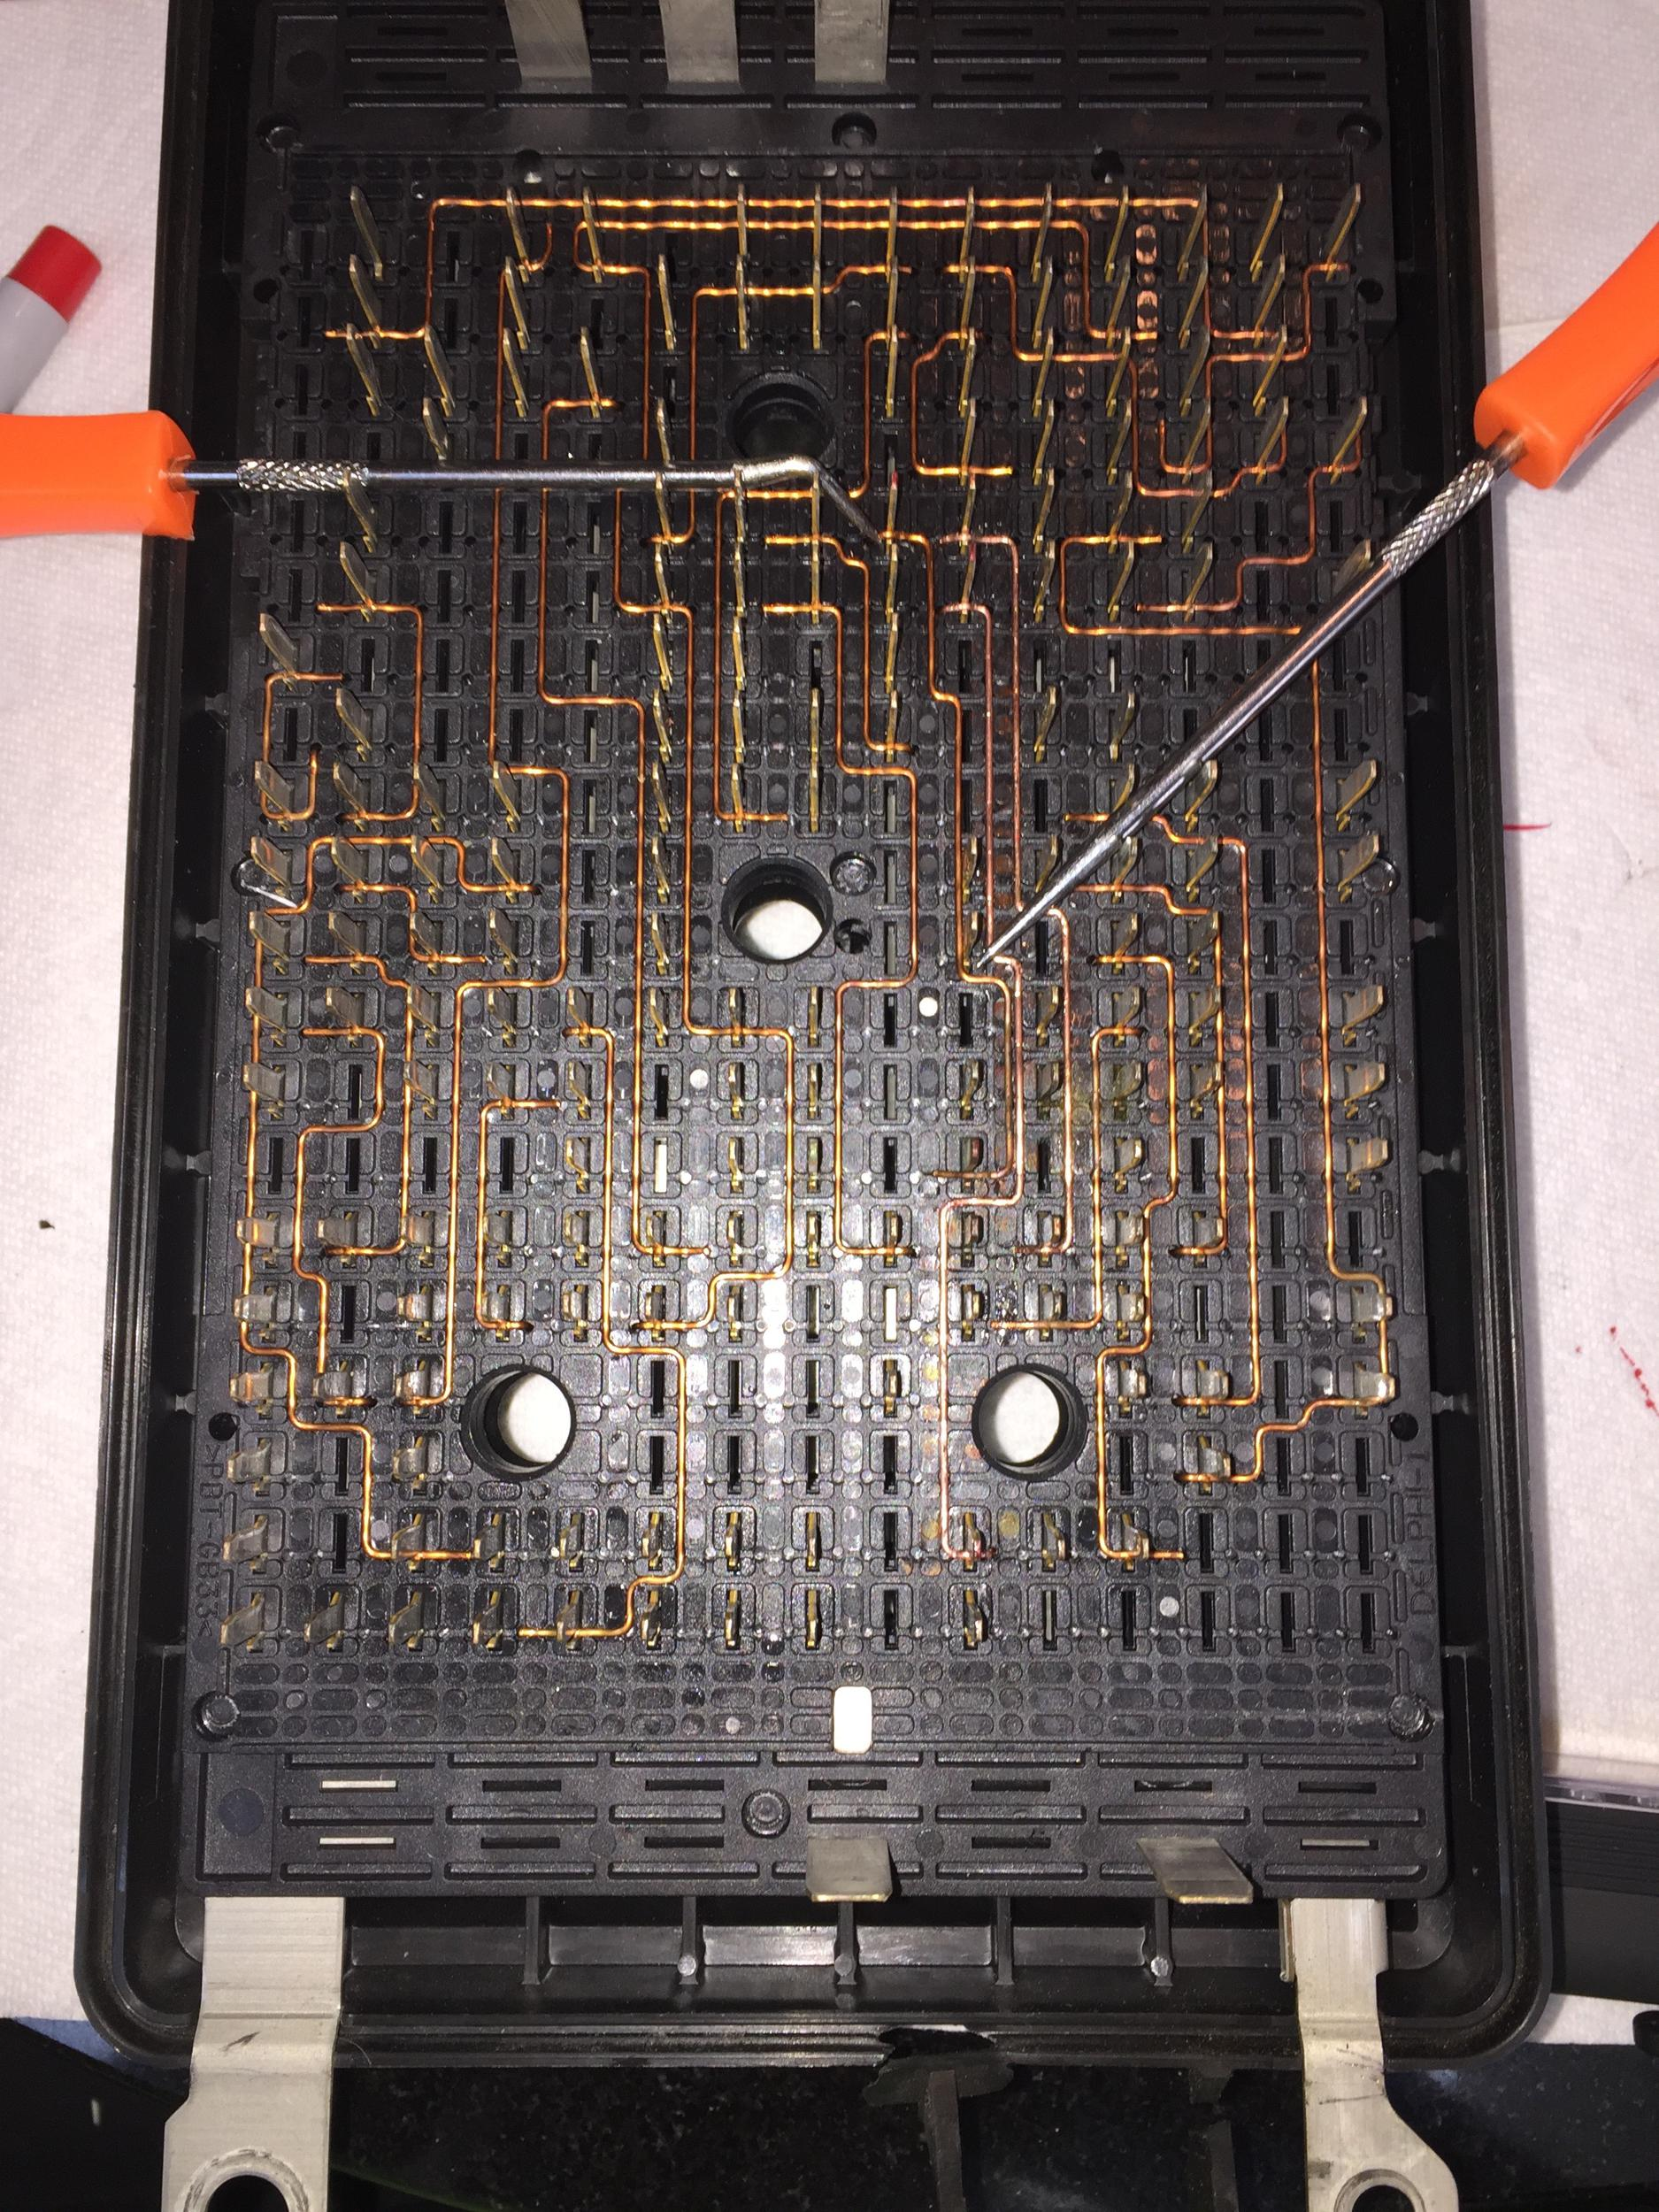 Gm Fuse Box Disassembly Manual Of Wiring Diagram Repair 06 R Bad Wire Chevy Ssr Forum Rh Ssrfanatic Com